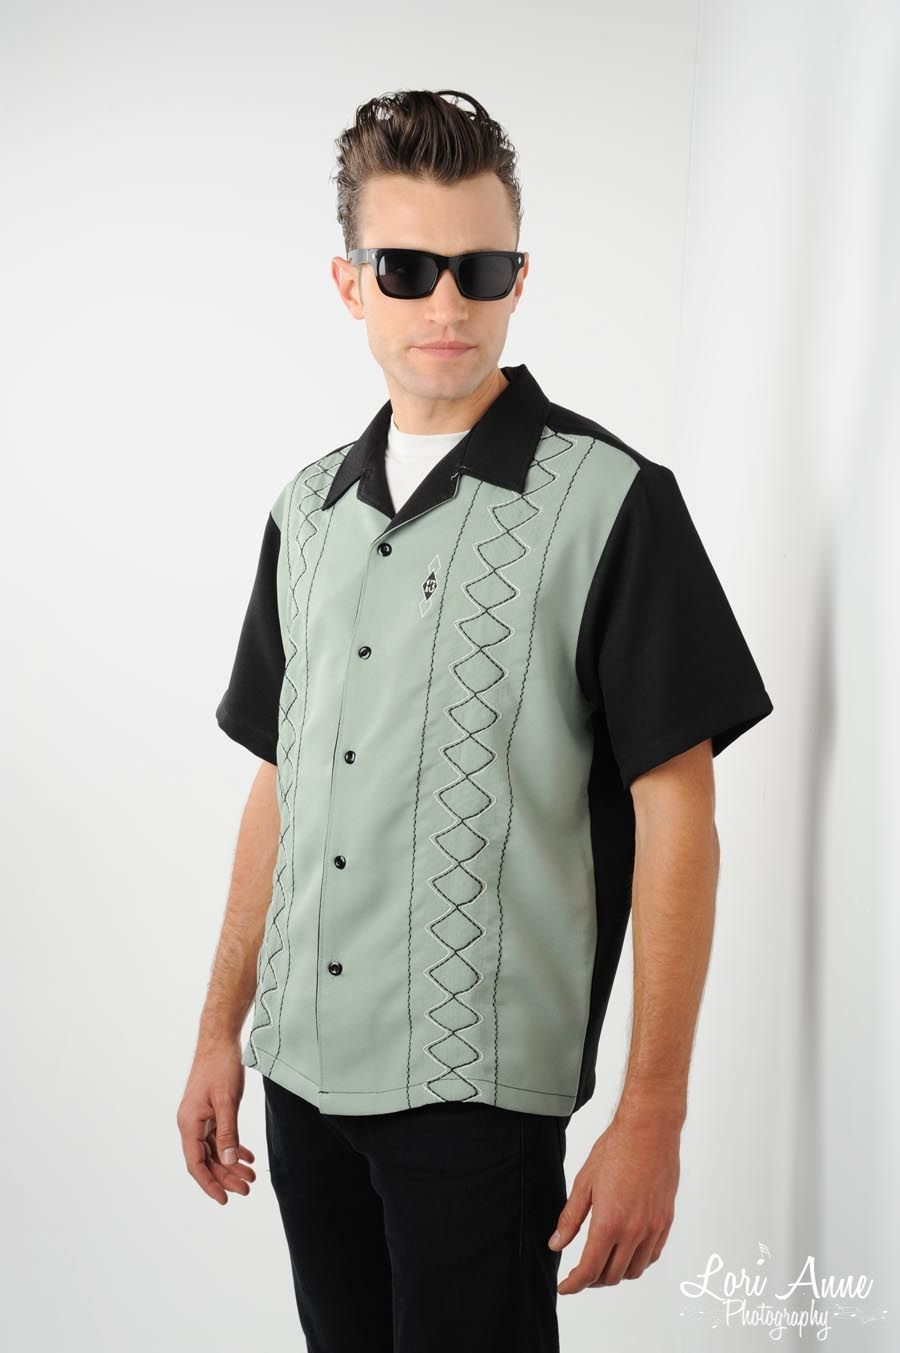 Agenda Mens Lounge Shirt in Black and Sage - These American made classic button-down lounge shirts look sharp while remaining comfortable, perfect for your retro guy!  The front panels feature attractive stitching on sage green crepe and a small 13 logo.